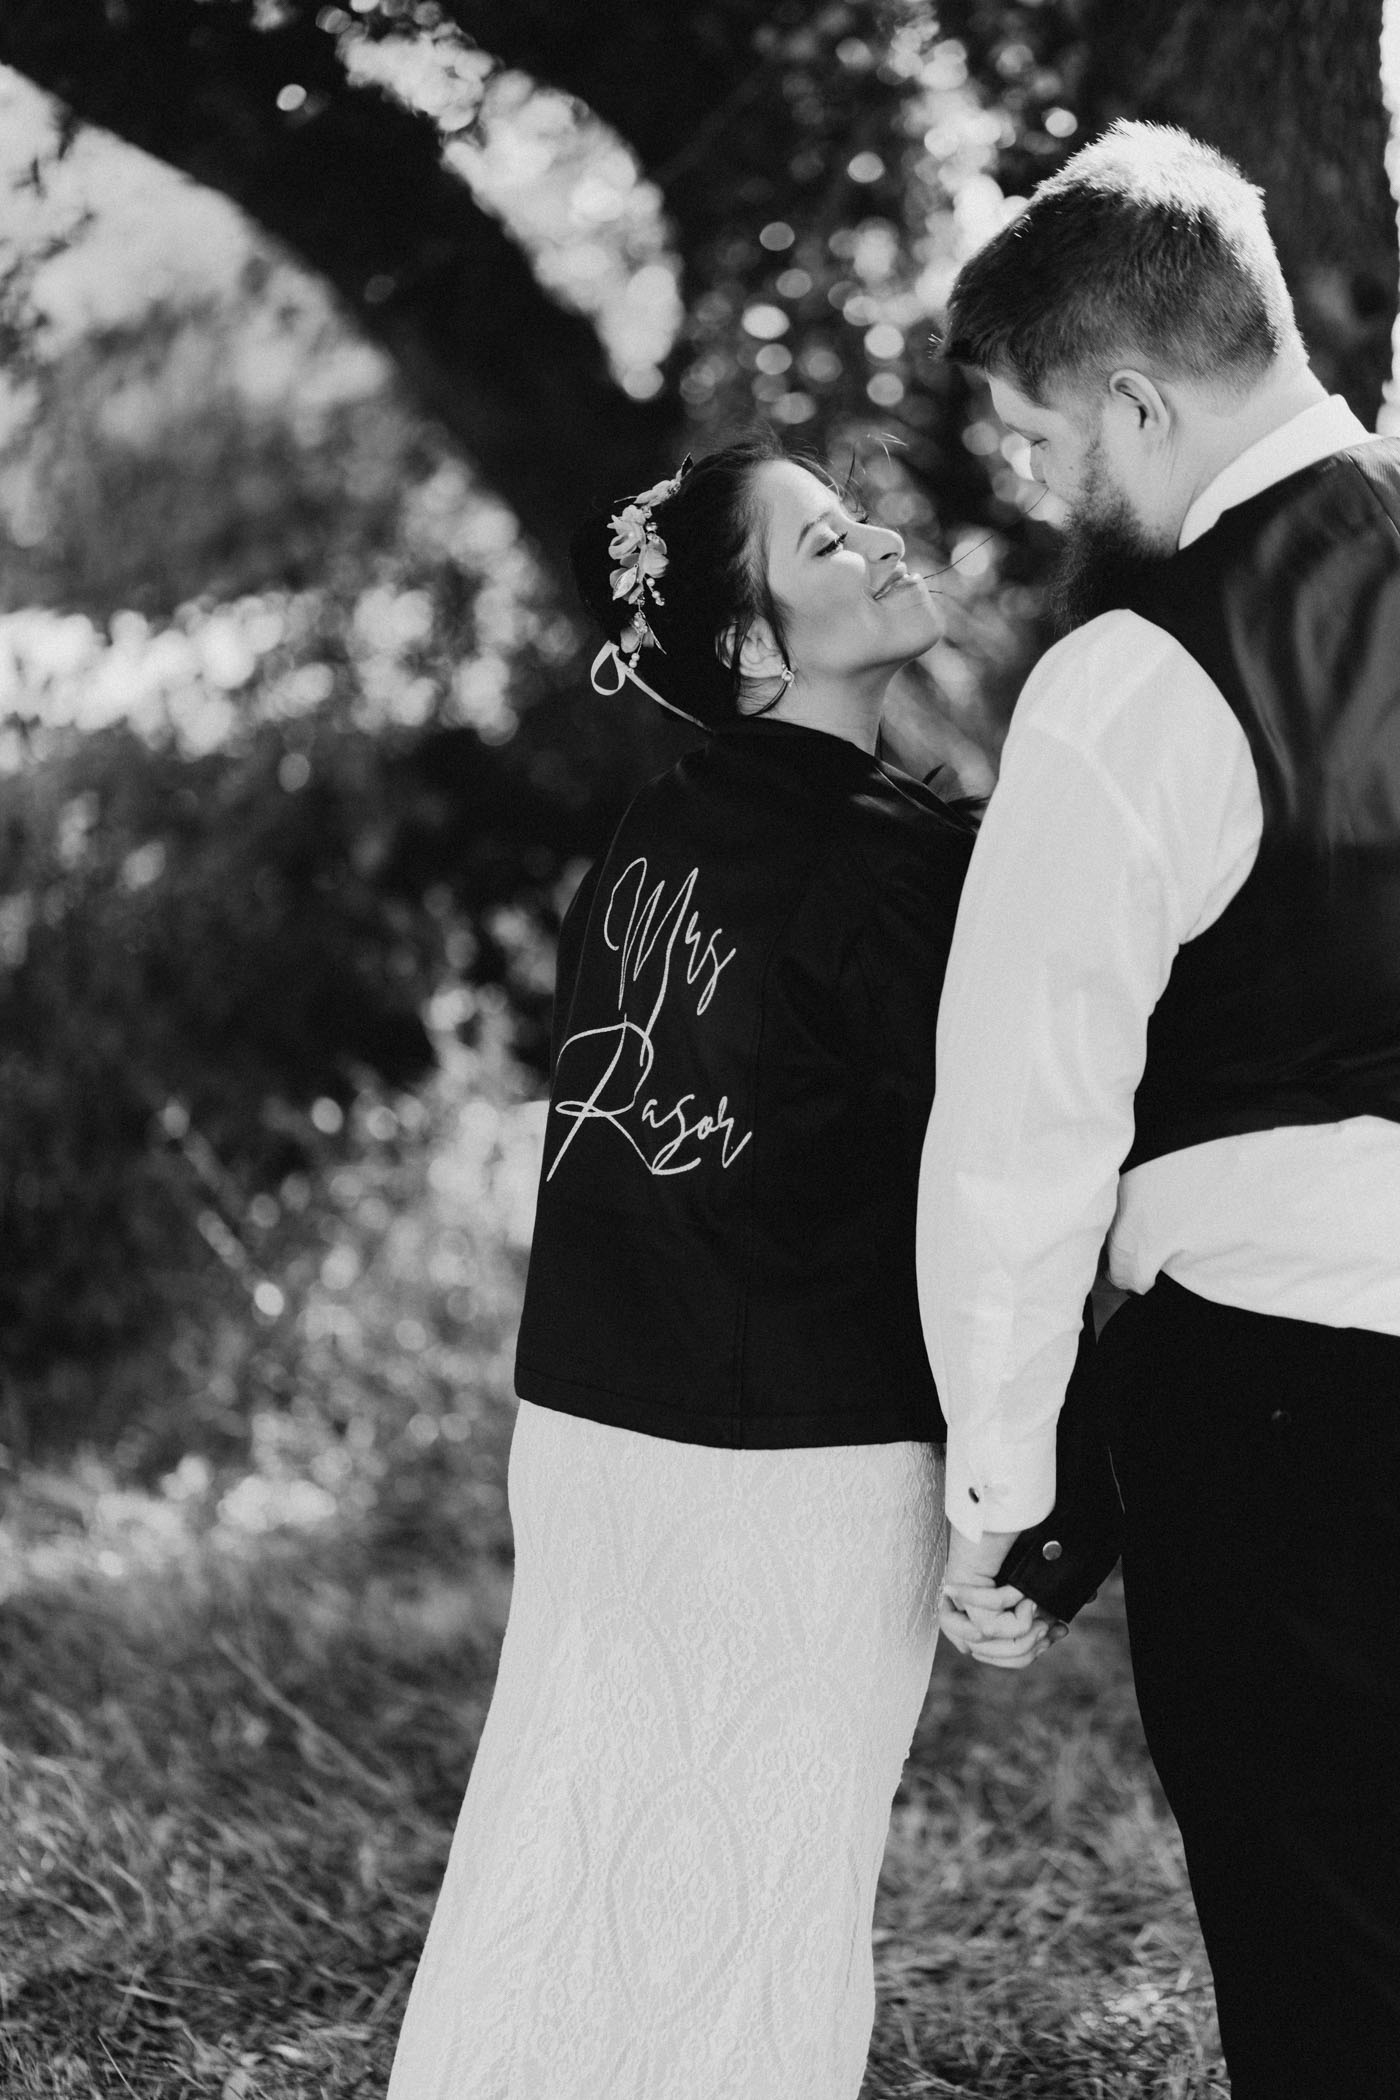 Bride smiling at groom while wearing her wedding dress and a custom leather jacket